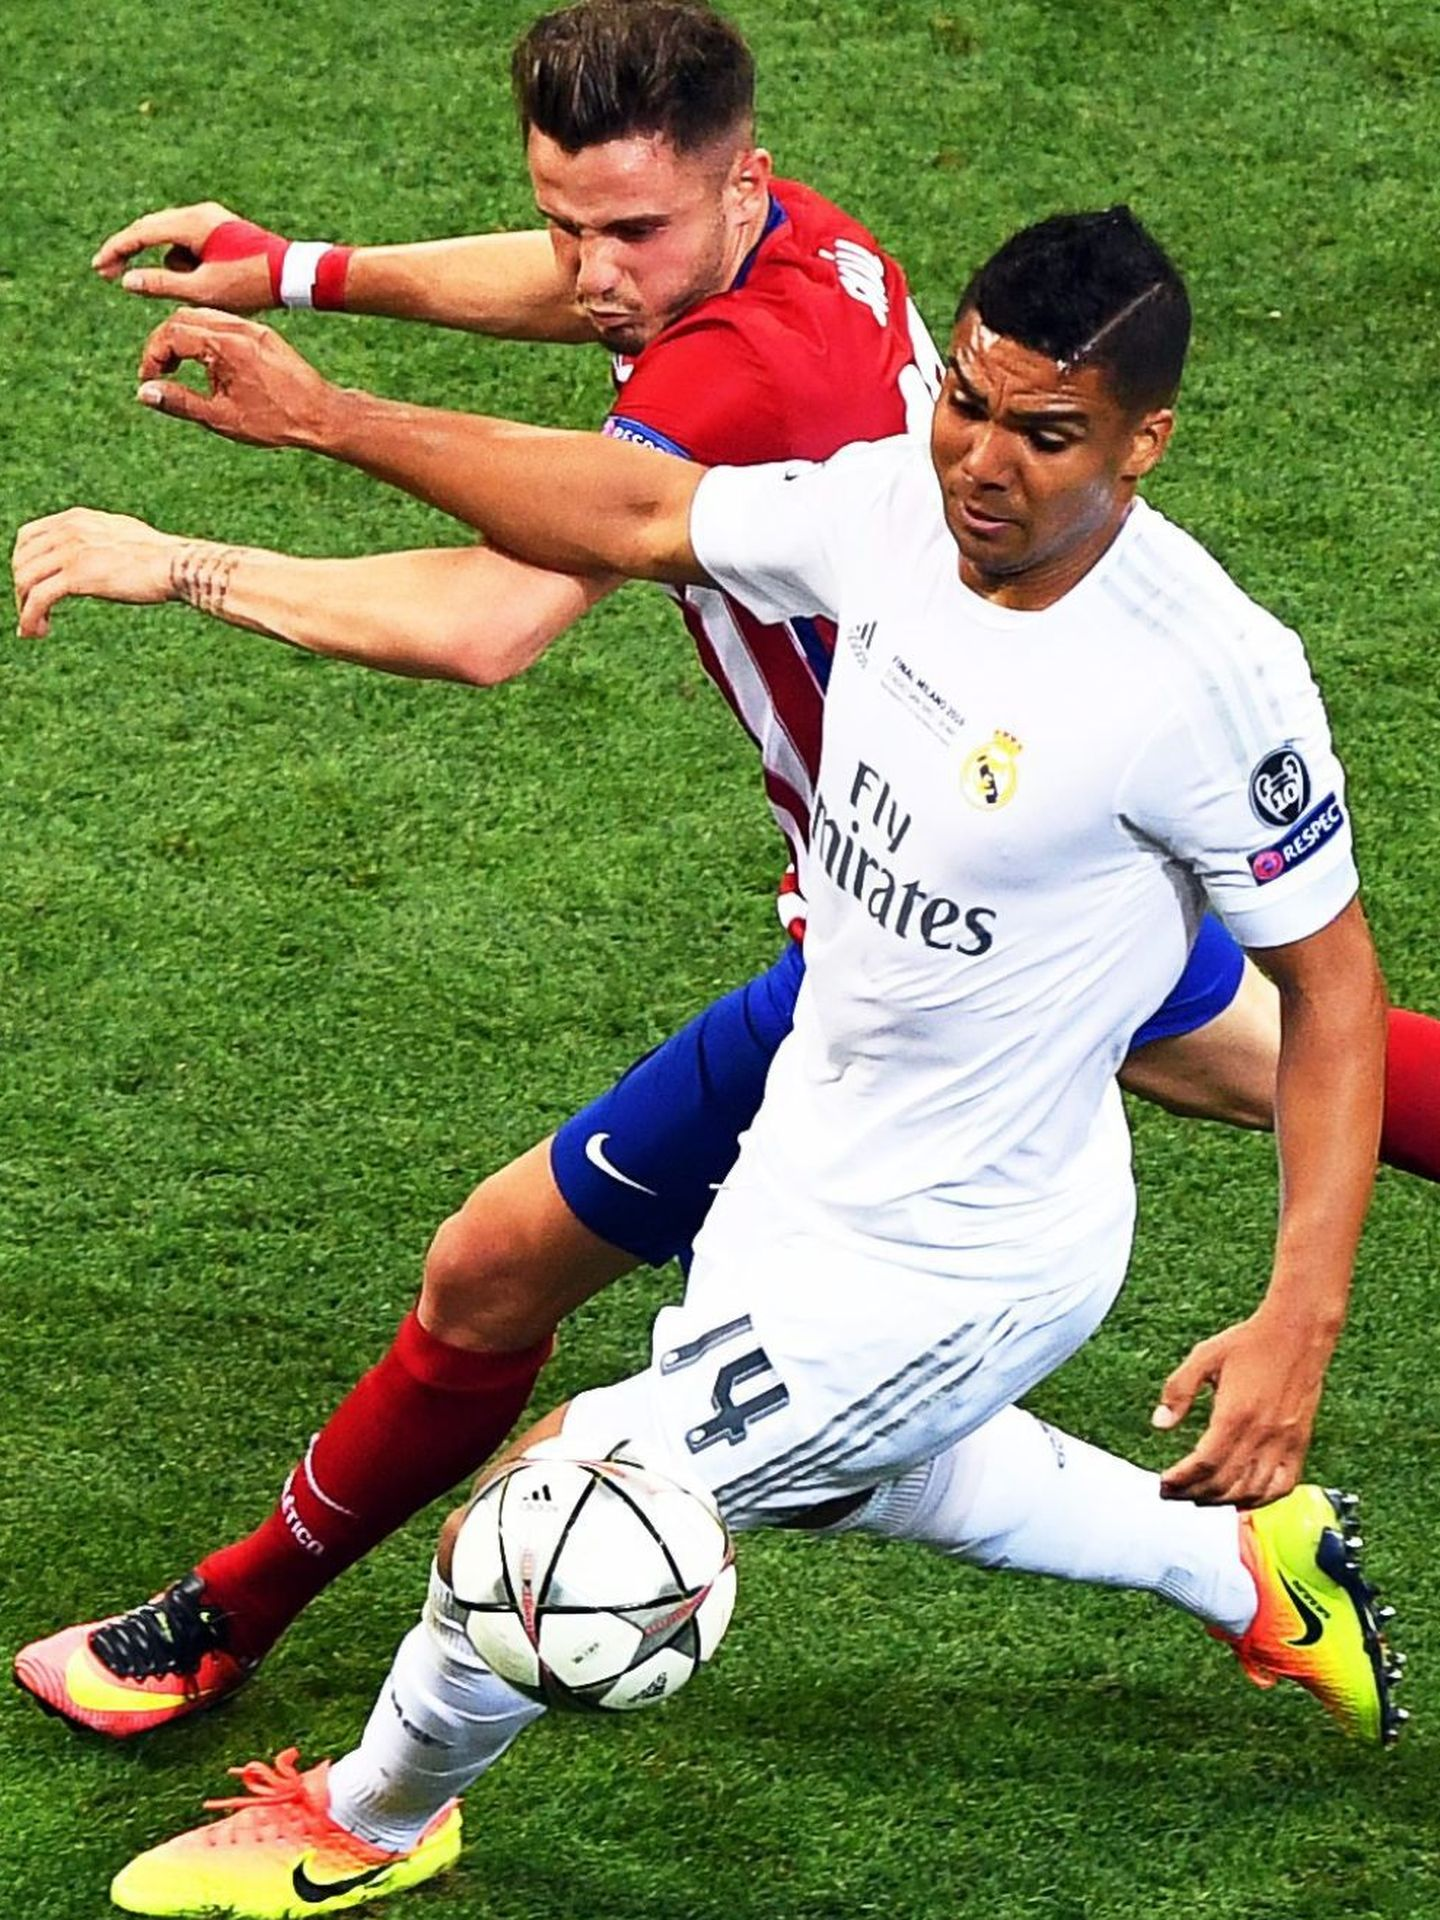 . Milan (Italy), 28 05 2016.- Atletico Madrid's Saul Niguez (L) in action against Real Madrid's Casemiro (R) during the UEFA Champions League final between Real Madrid and Atletico Madrid at the Giuseppe Meazza Stadium in Milan, Italy, 28 May 2016. (Liga de Campeones, Italia) EFE EPA CHRISTIAN BRUNA